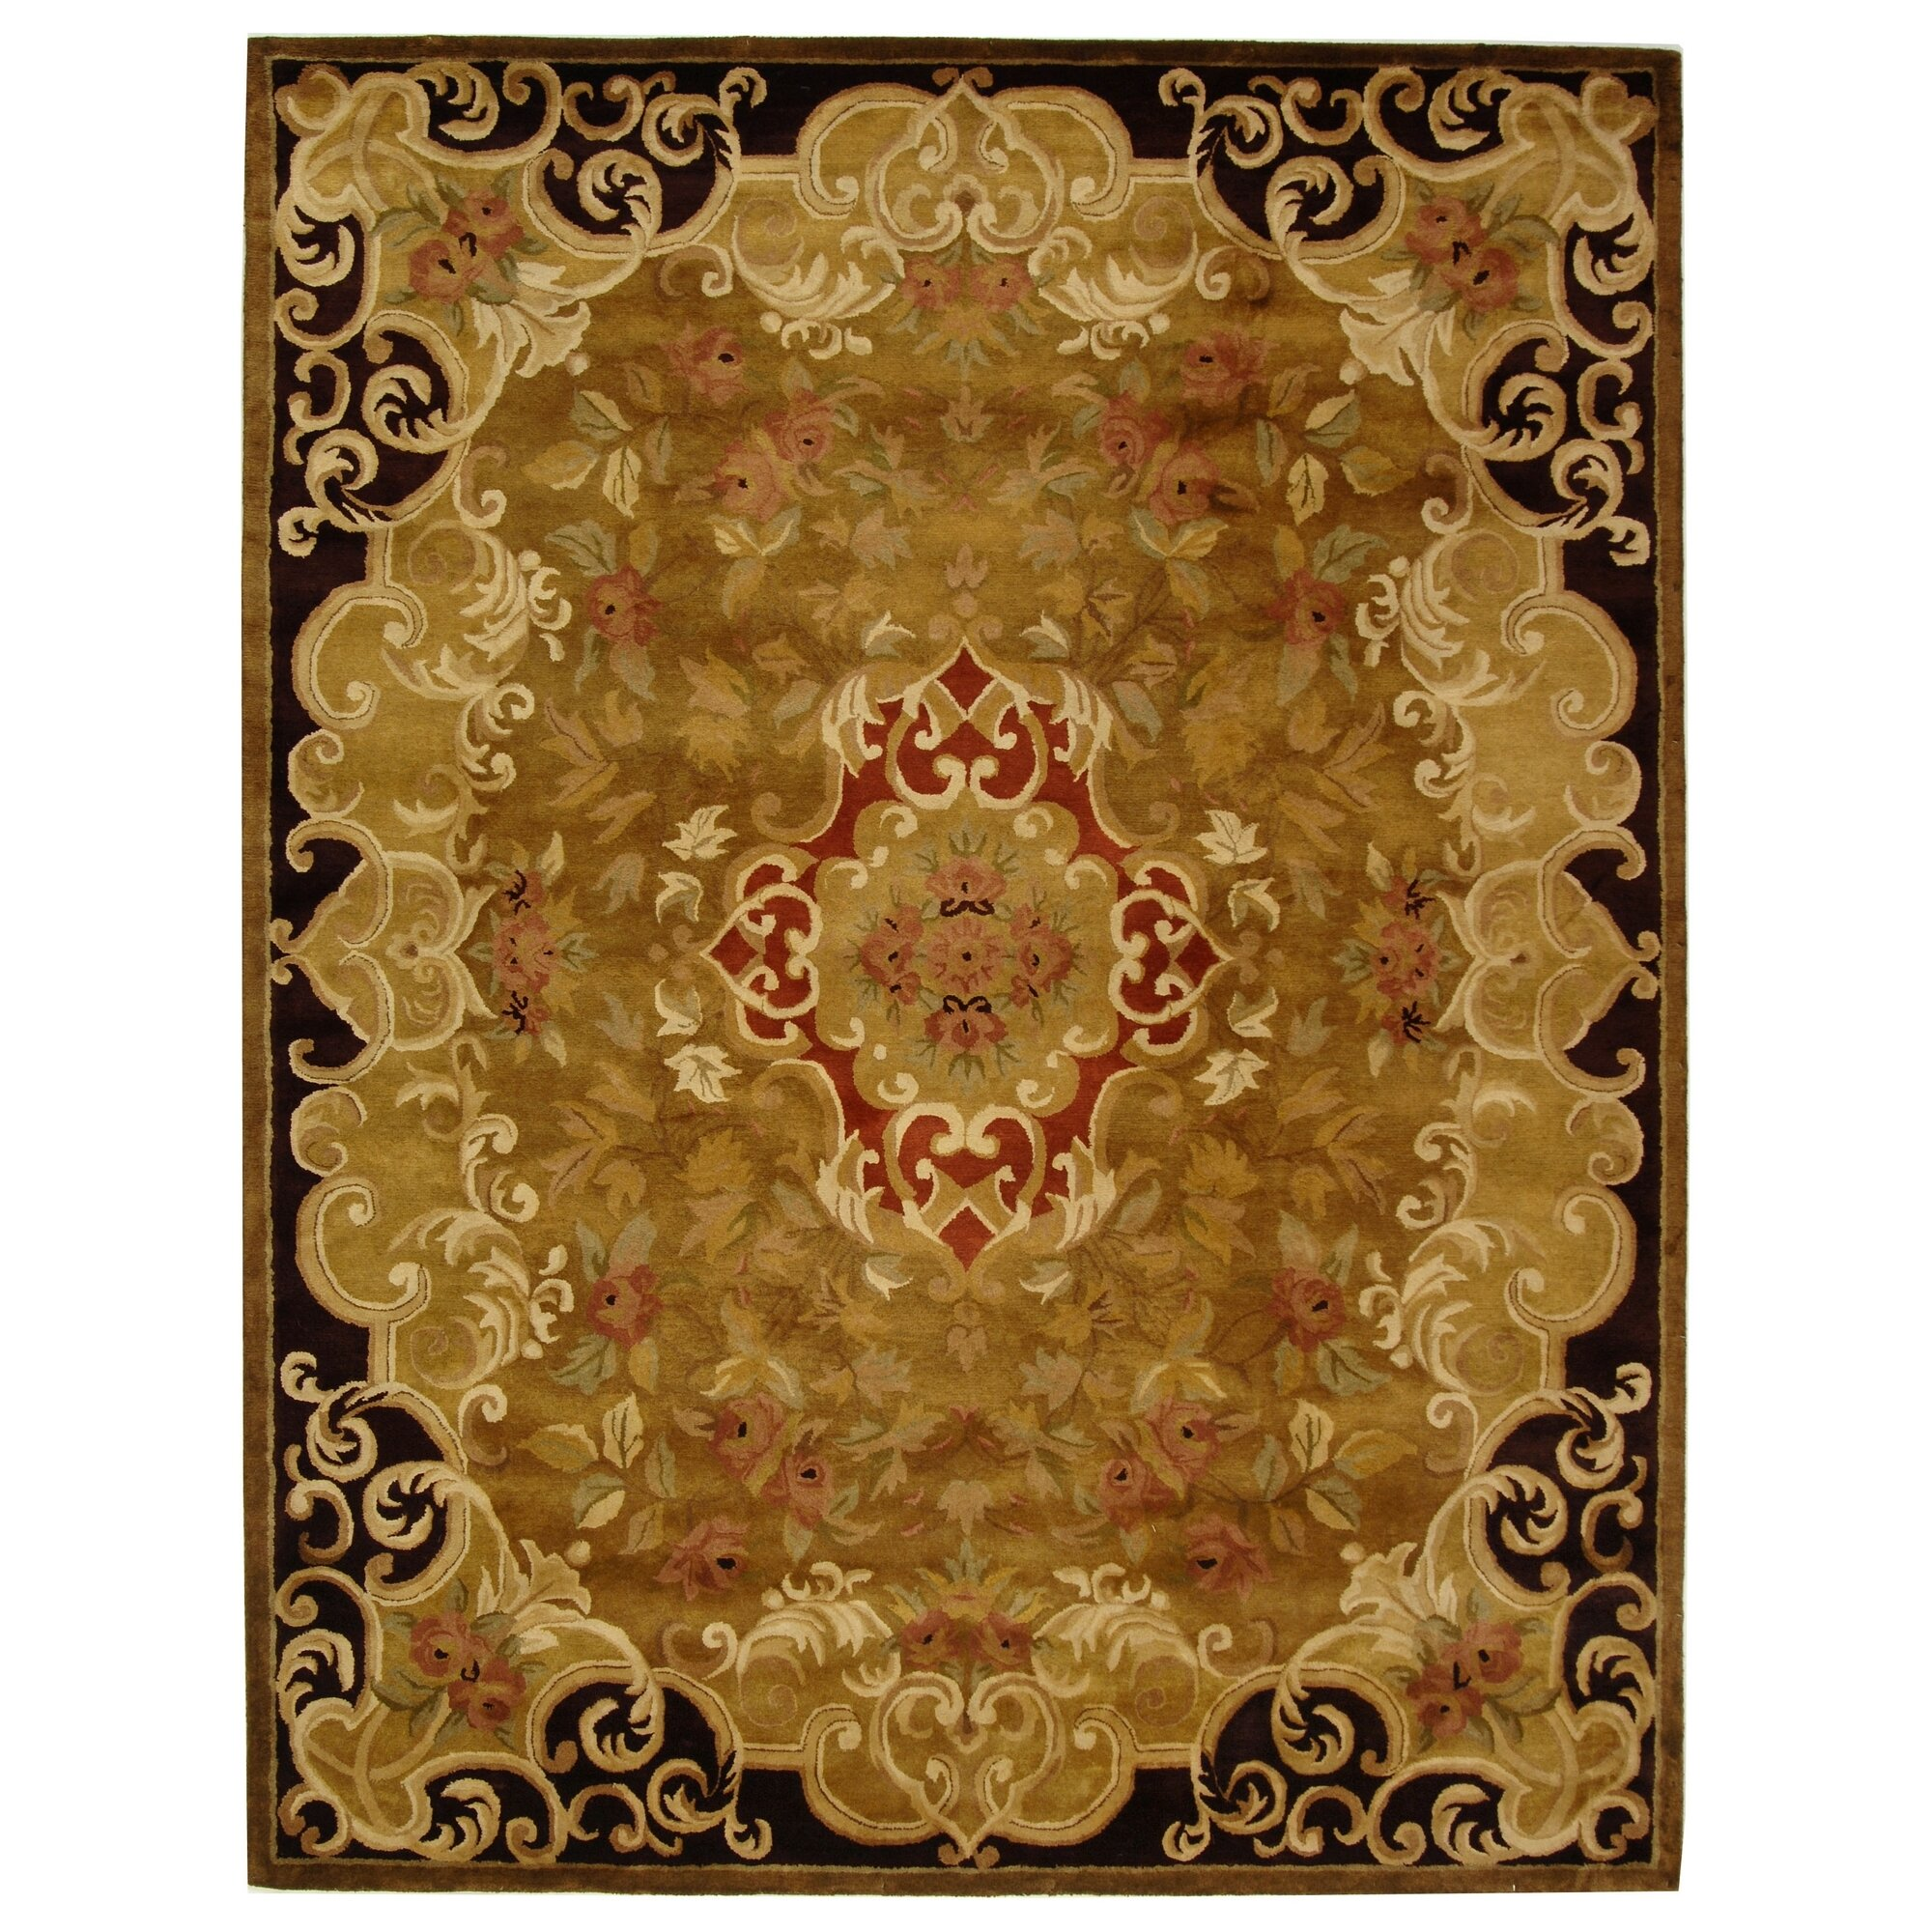 Rug Runner Gold: Classic Gold/Cola Rug